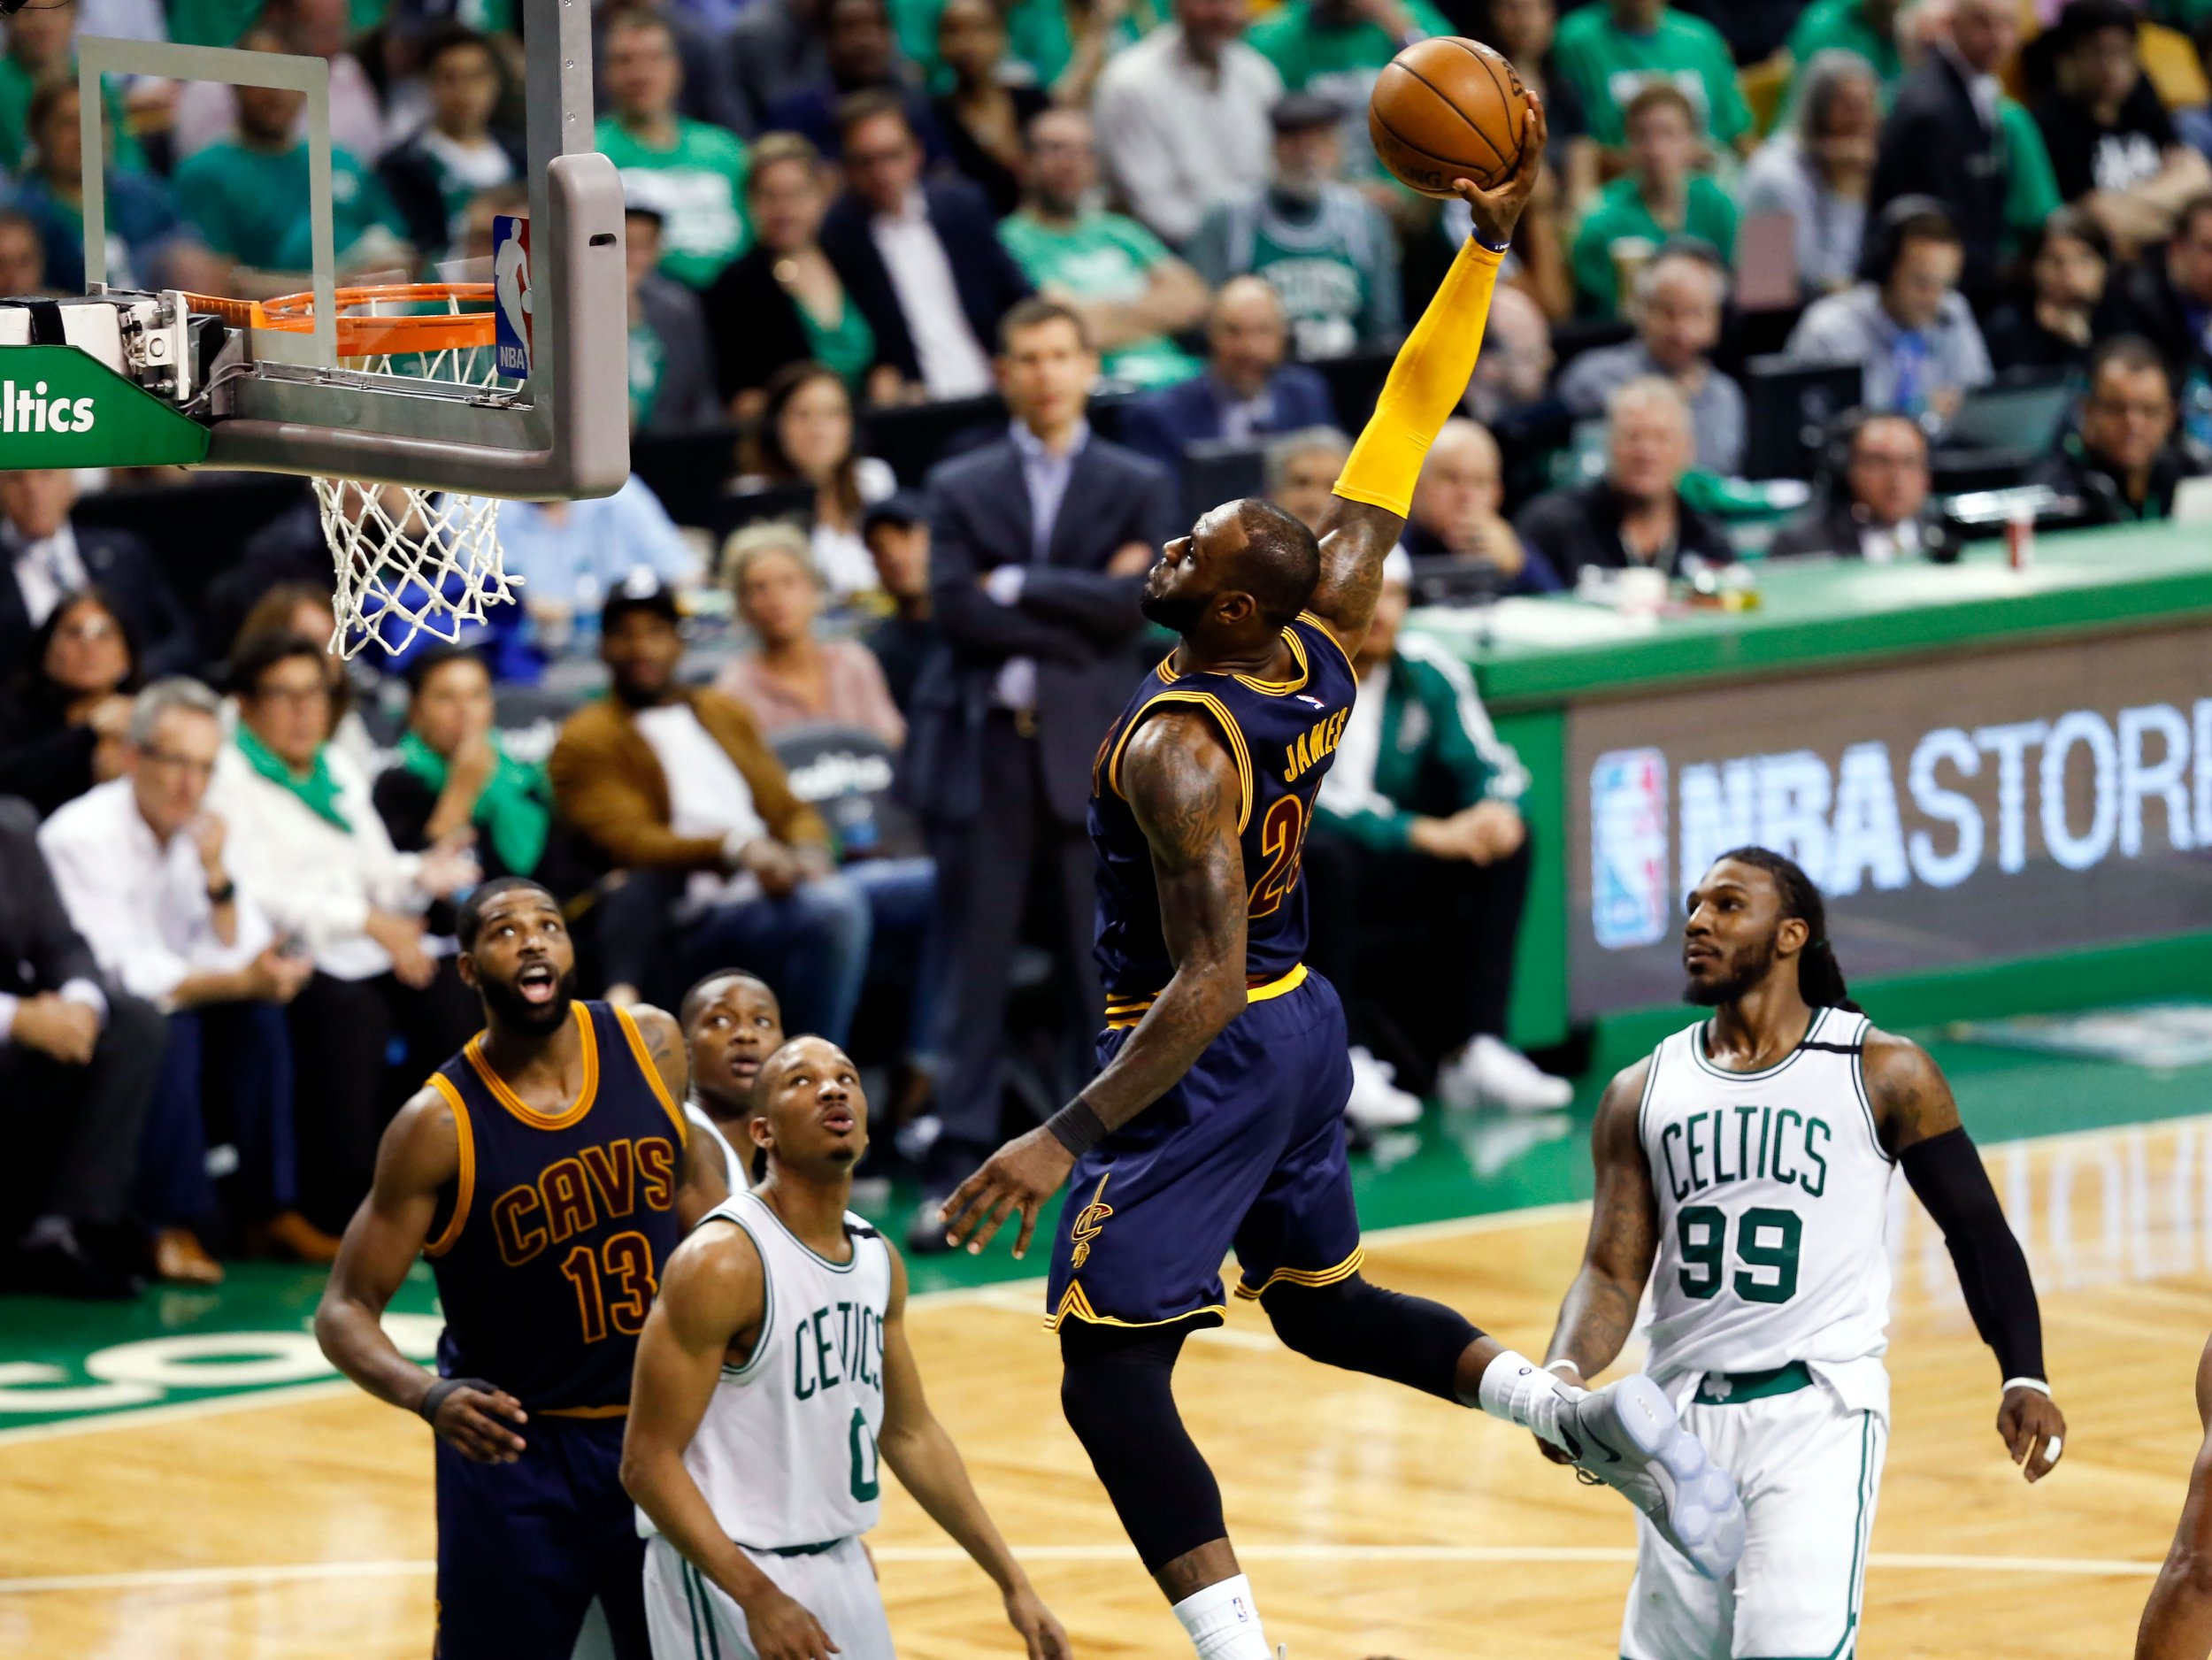 67738c701724 Cleveland Cavaliers forward LeBron James dunks and scores against the  Boston Celtics at TD Garden